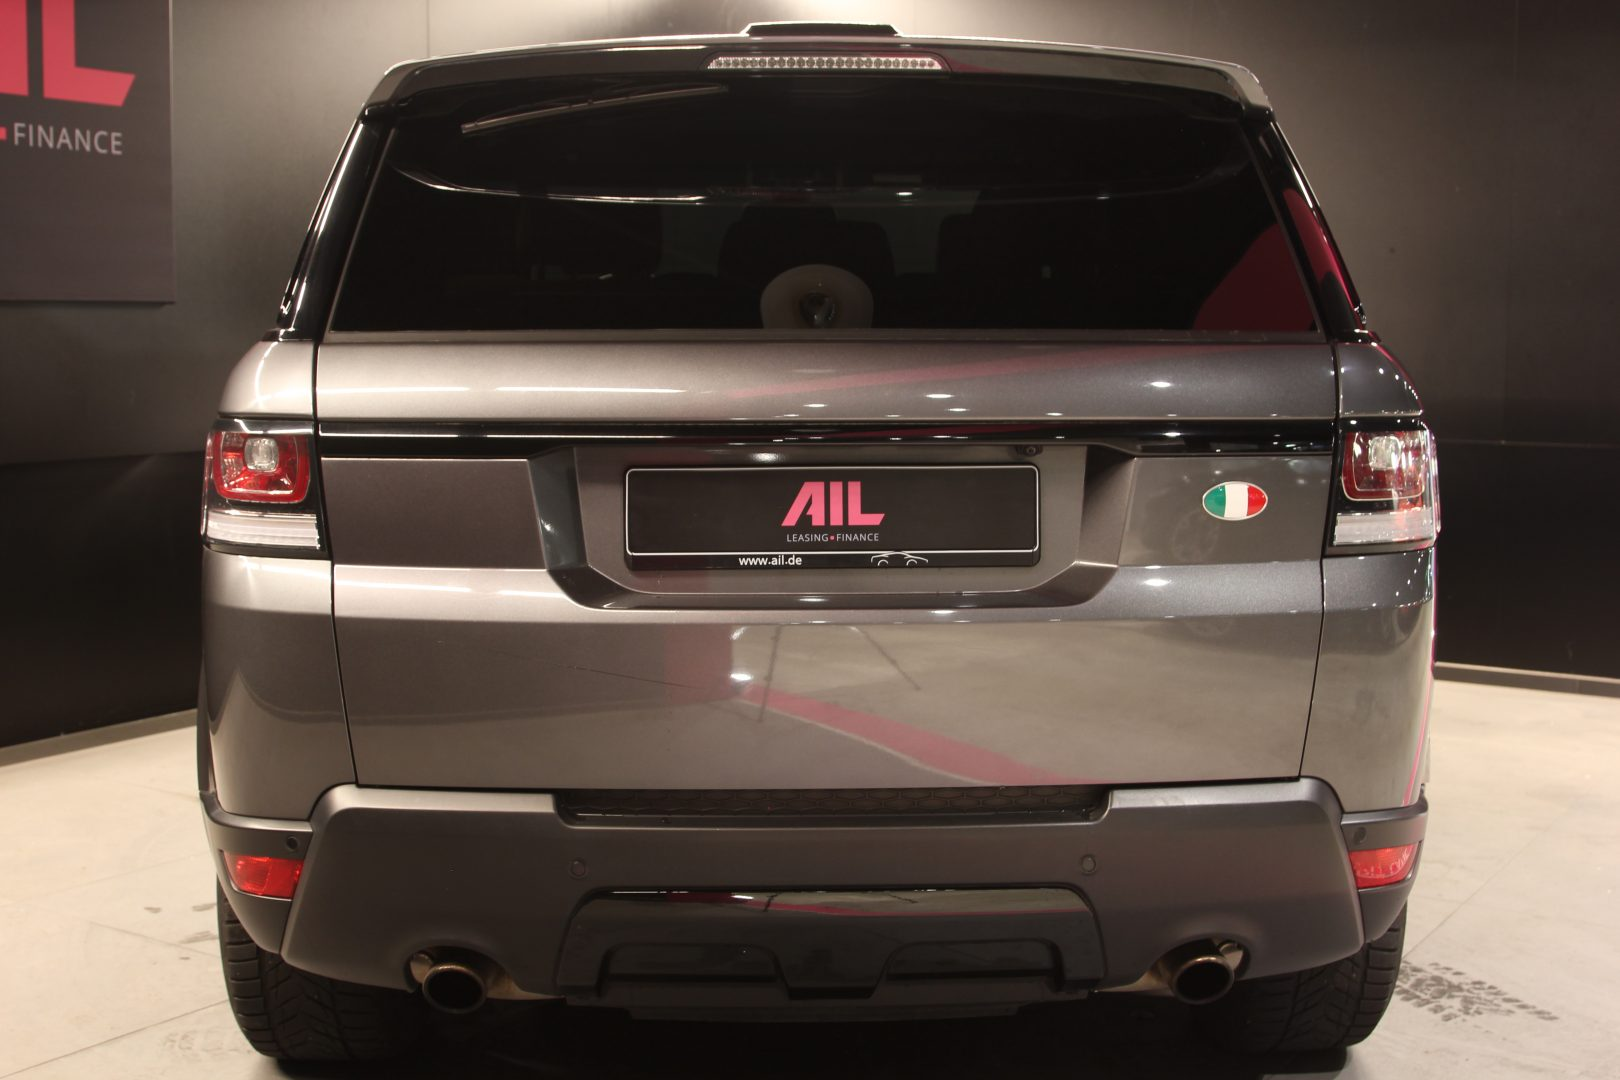 AIL Land Rover Range Rover Sport Autobiography  5.0 V8 11